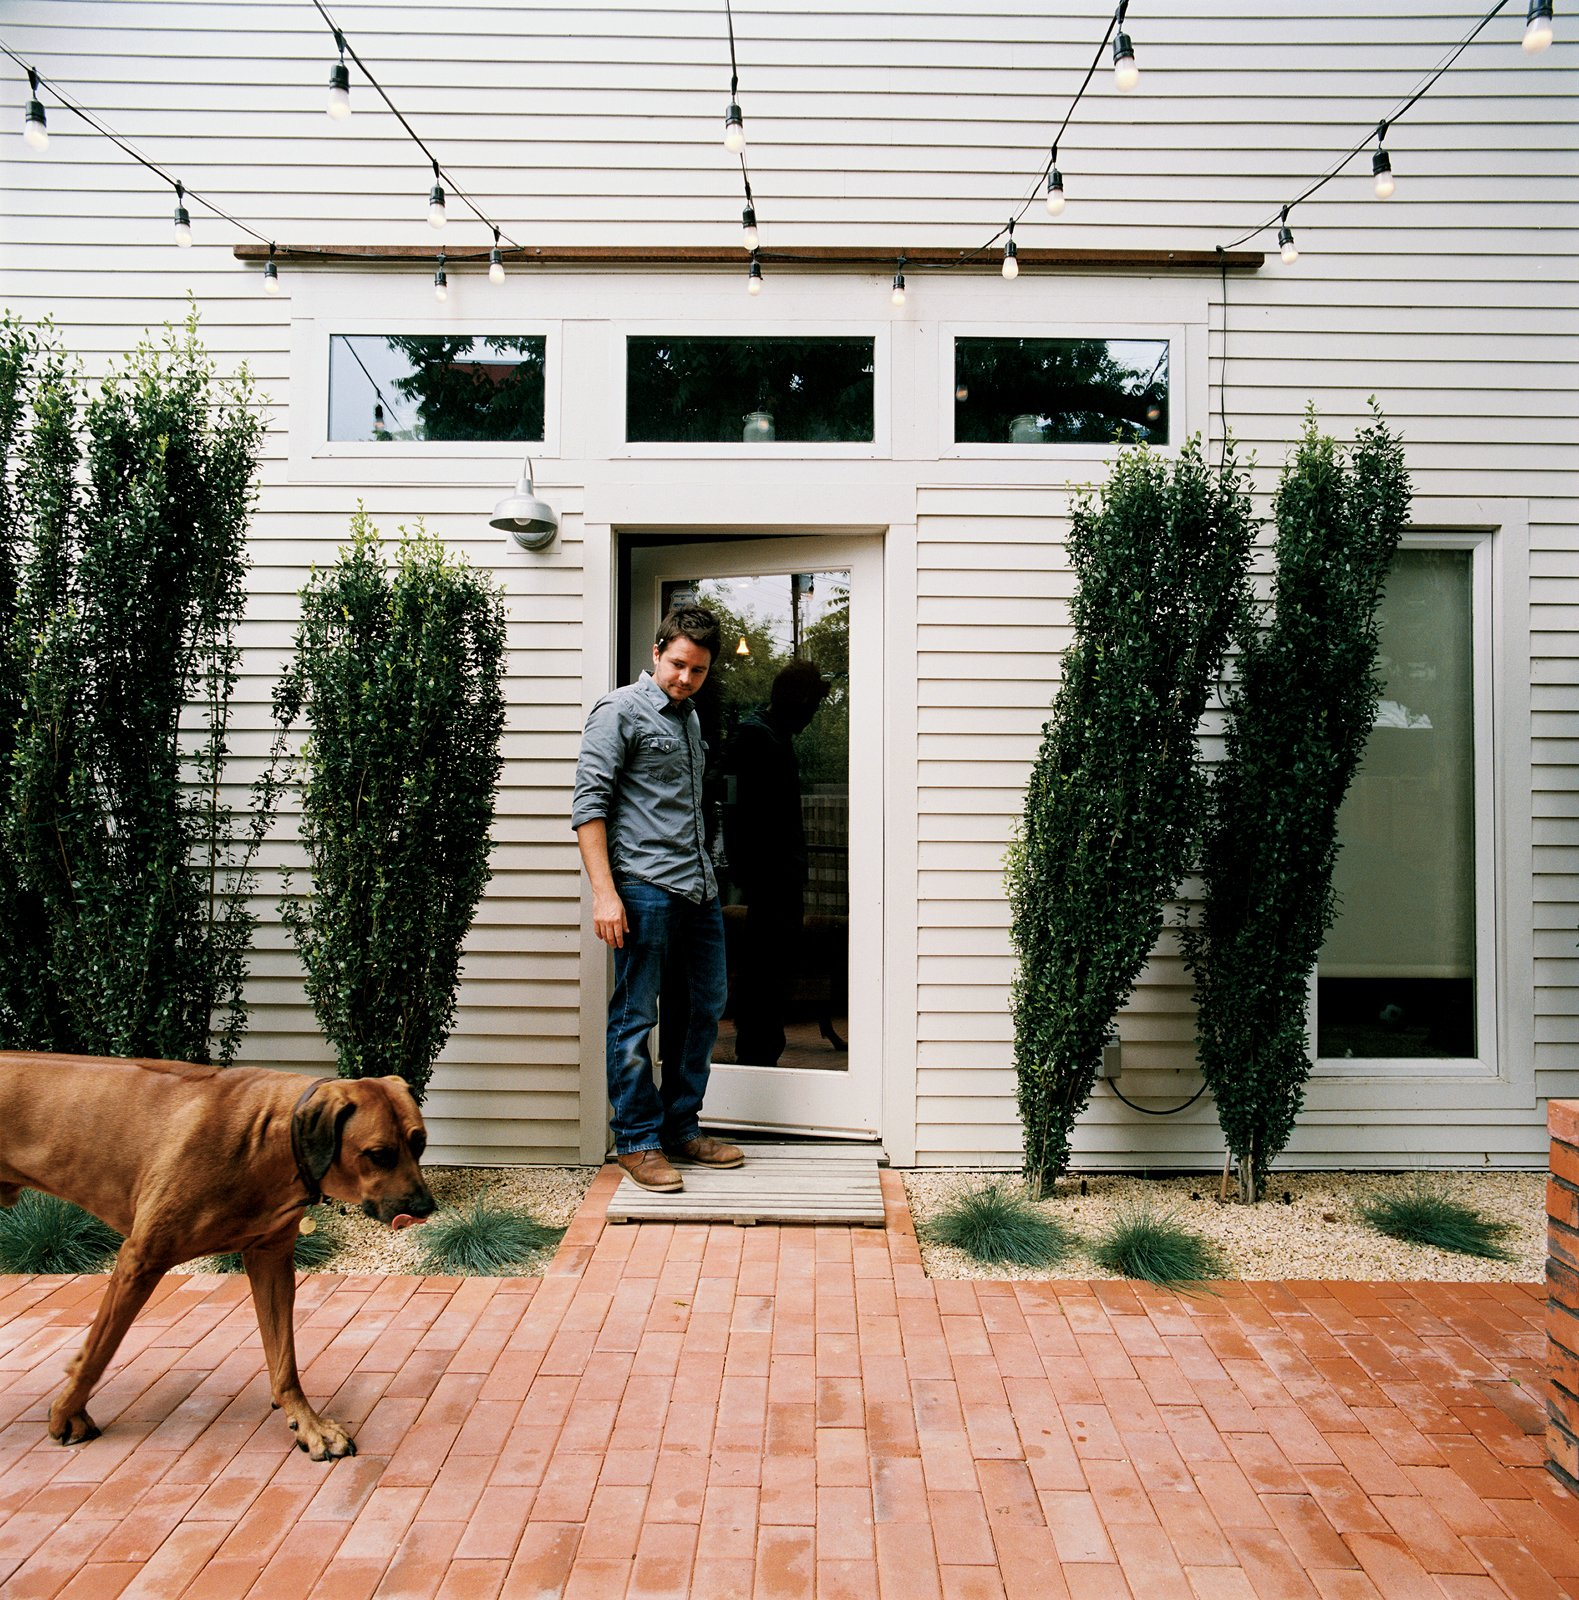 Outdoor, Back Yard, Trees, Shrubs, Pavers Patio, Porch, Deck, and Hanging Lighting From the side door of his restored two-bedroom bungalow, Dollahite watches his   dog West inspect the newly installed low-maintenance landscaping and brick patio.  Photo 8 of 25 in Leap Into the Year of the Dog With These 25 Pups in the Modern World from Salvage Love